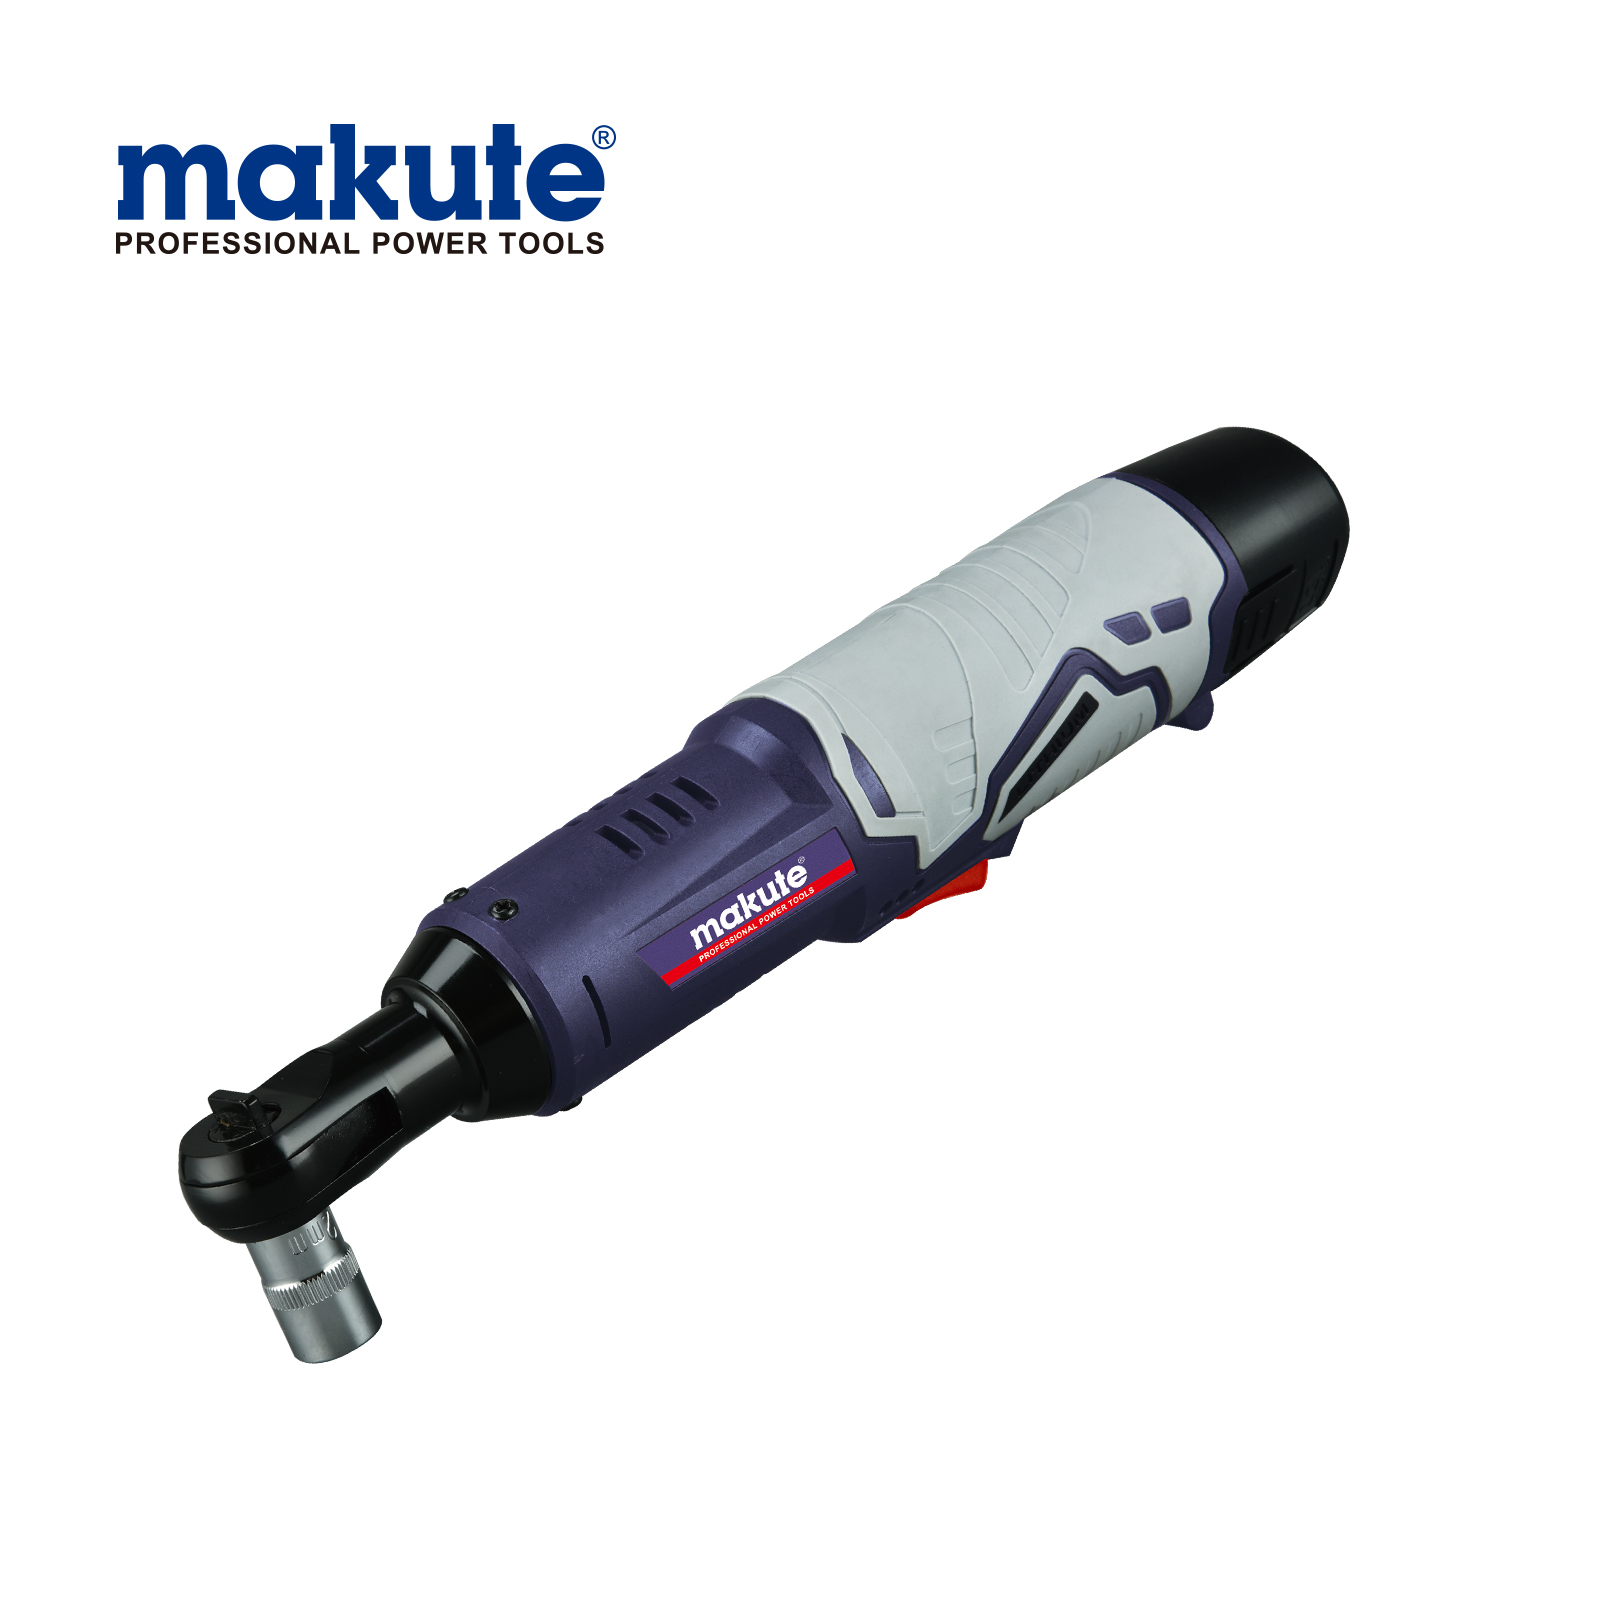 Makute Lithium automatic rechargeable Cordless Battery 12V Li-ion Mini Flexible Reversible cordless ratchet wrench electric ratchet